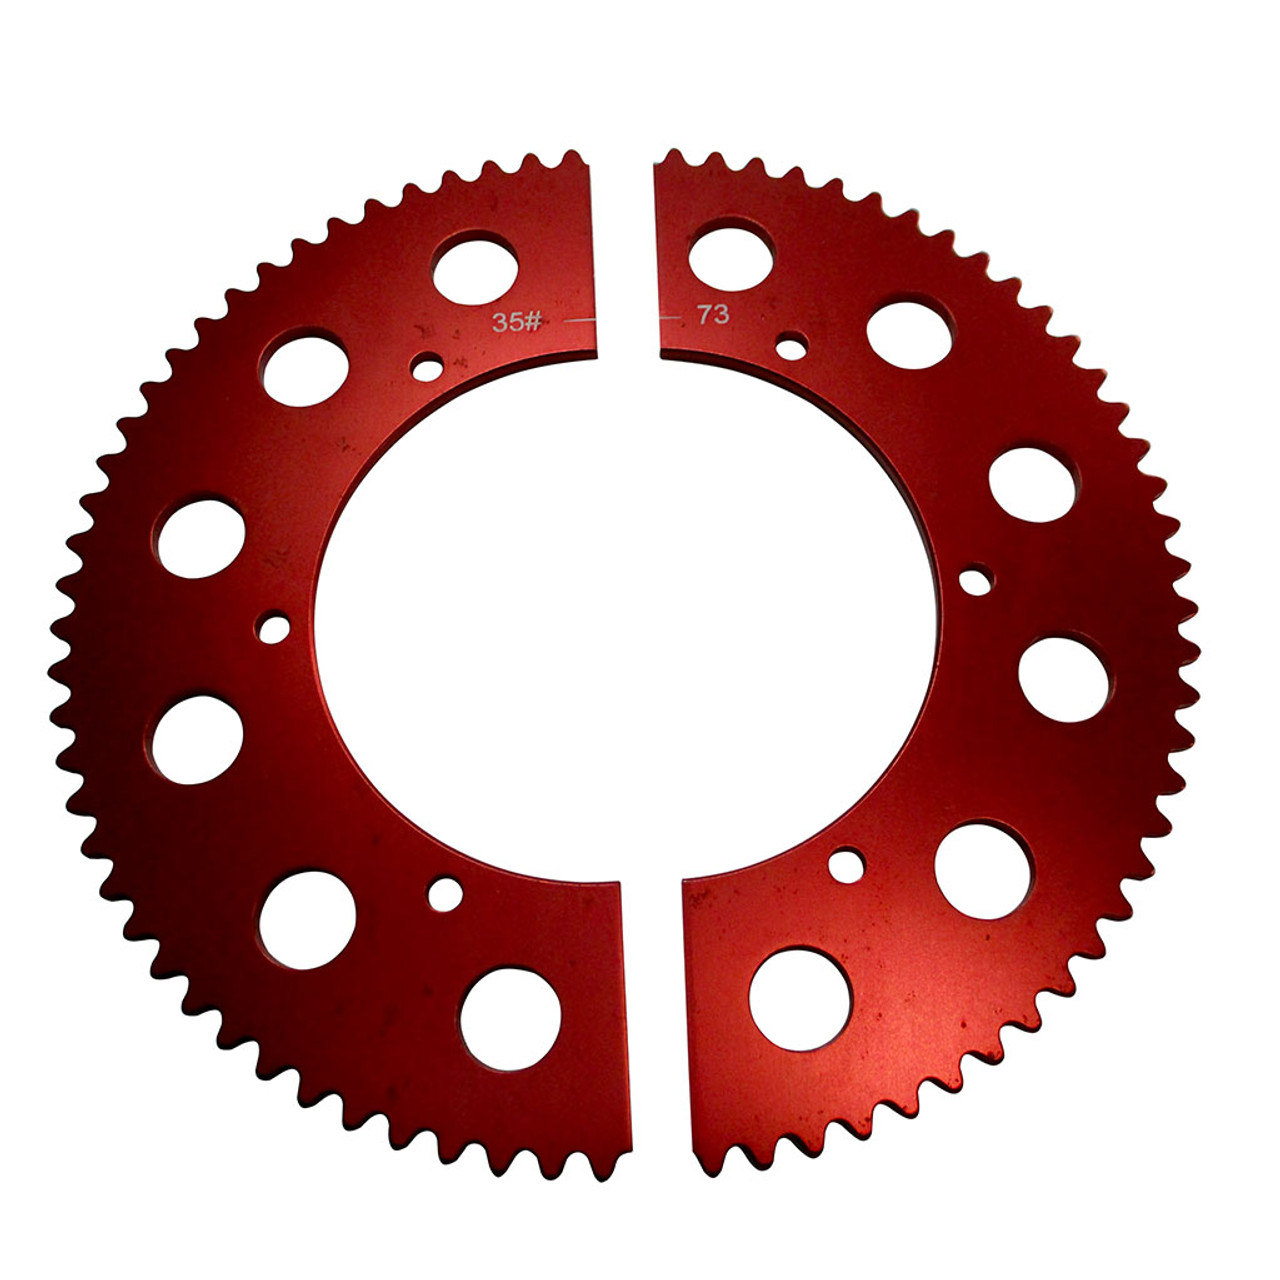 Pit Parts Split Sprocket - 73 Tooth - 35 Chain